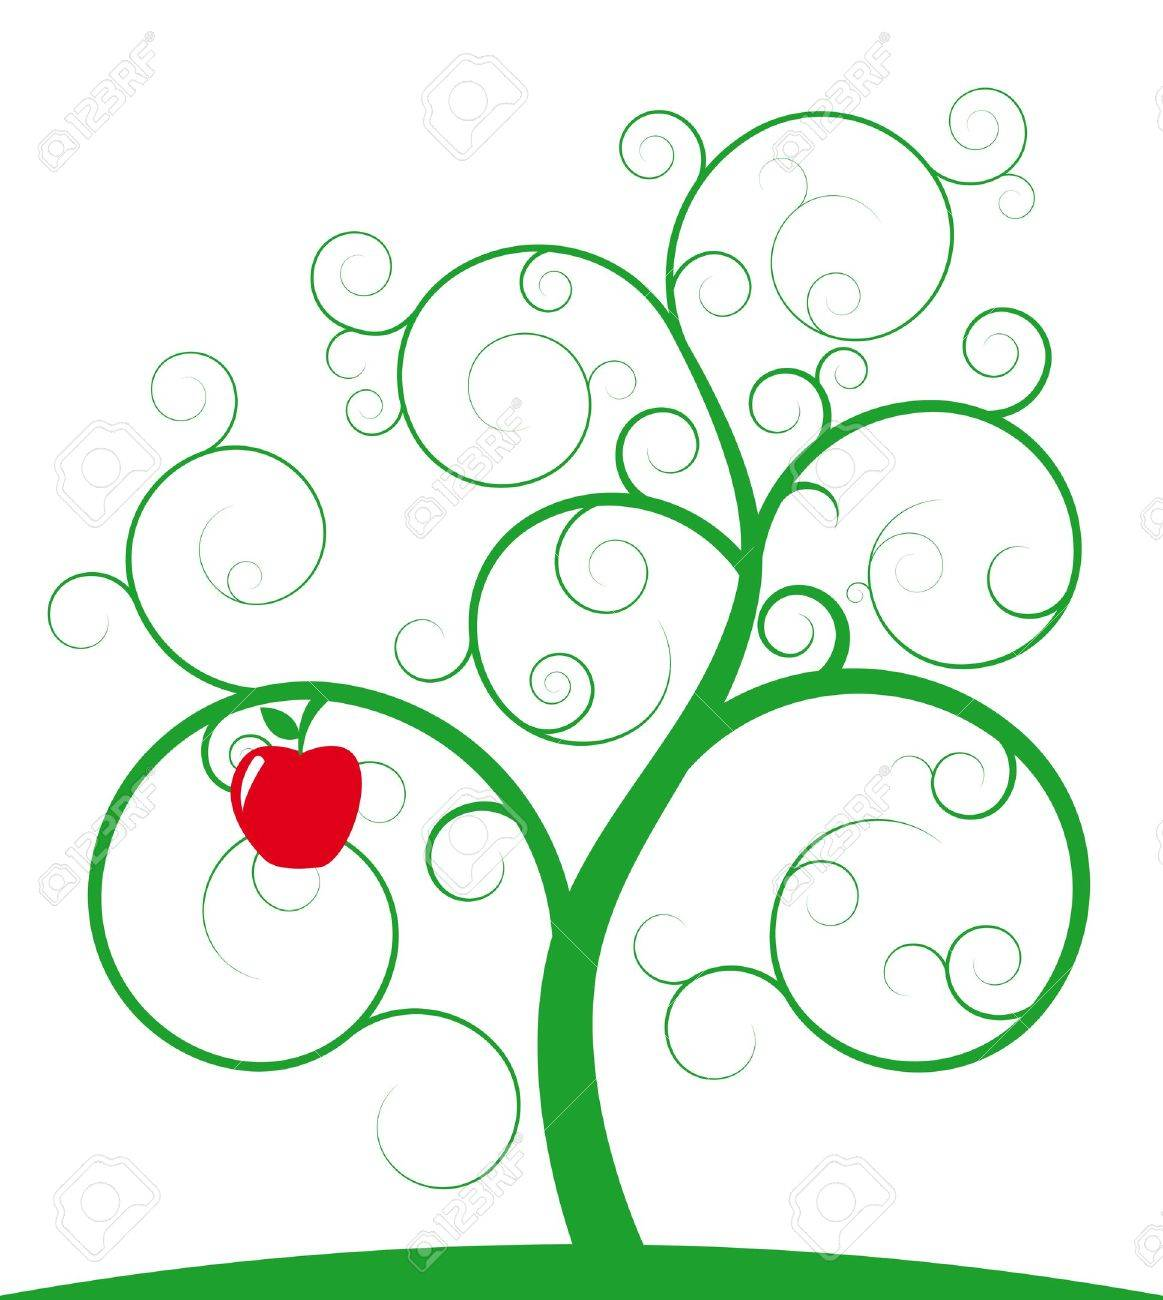 illustration of green spiral tree with red apple Stock Vector - 9576332